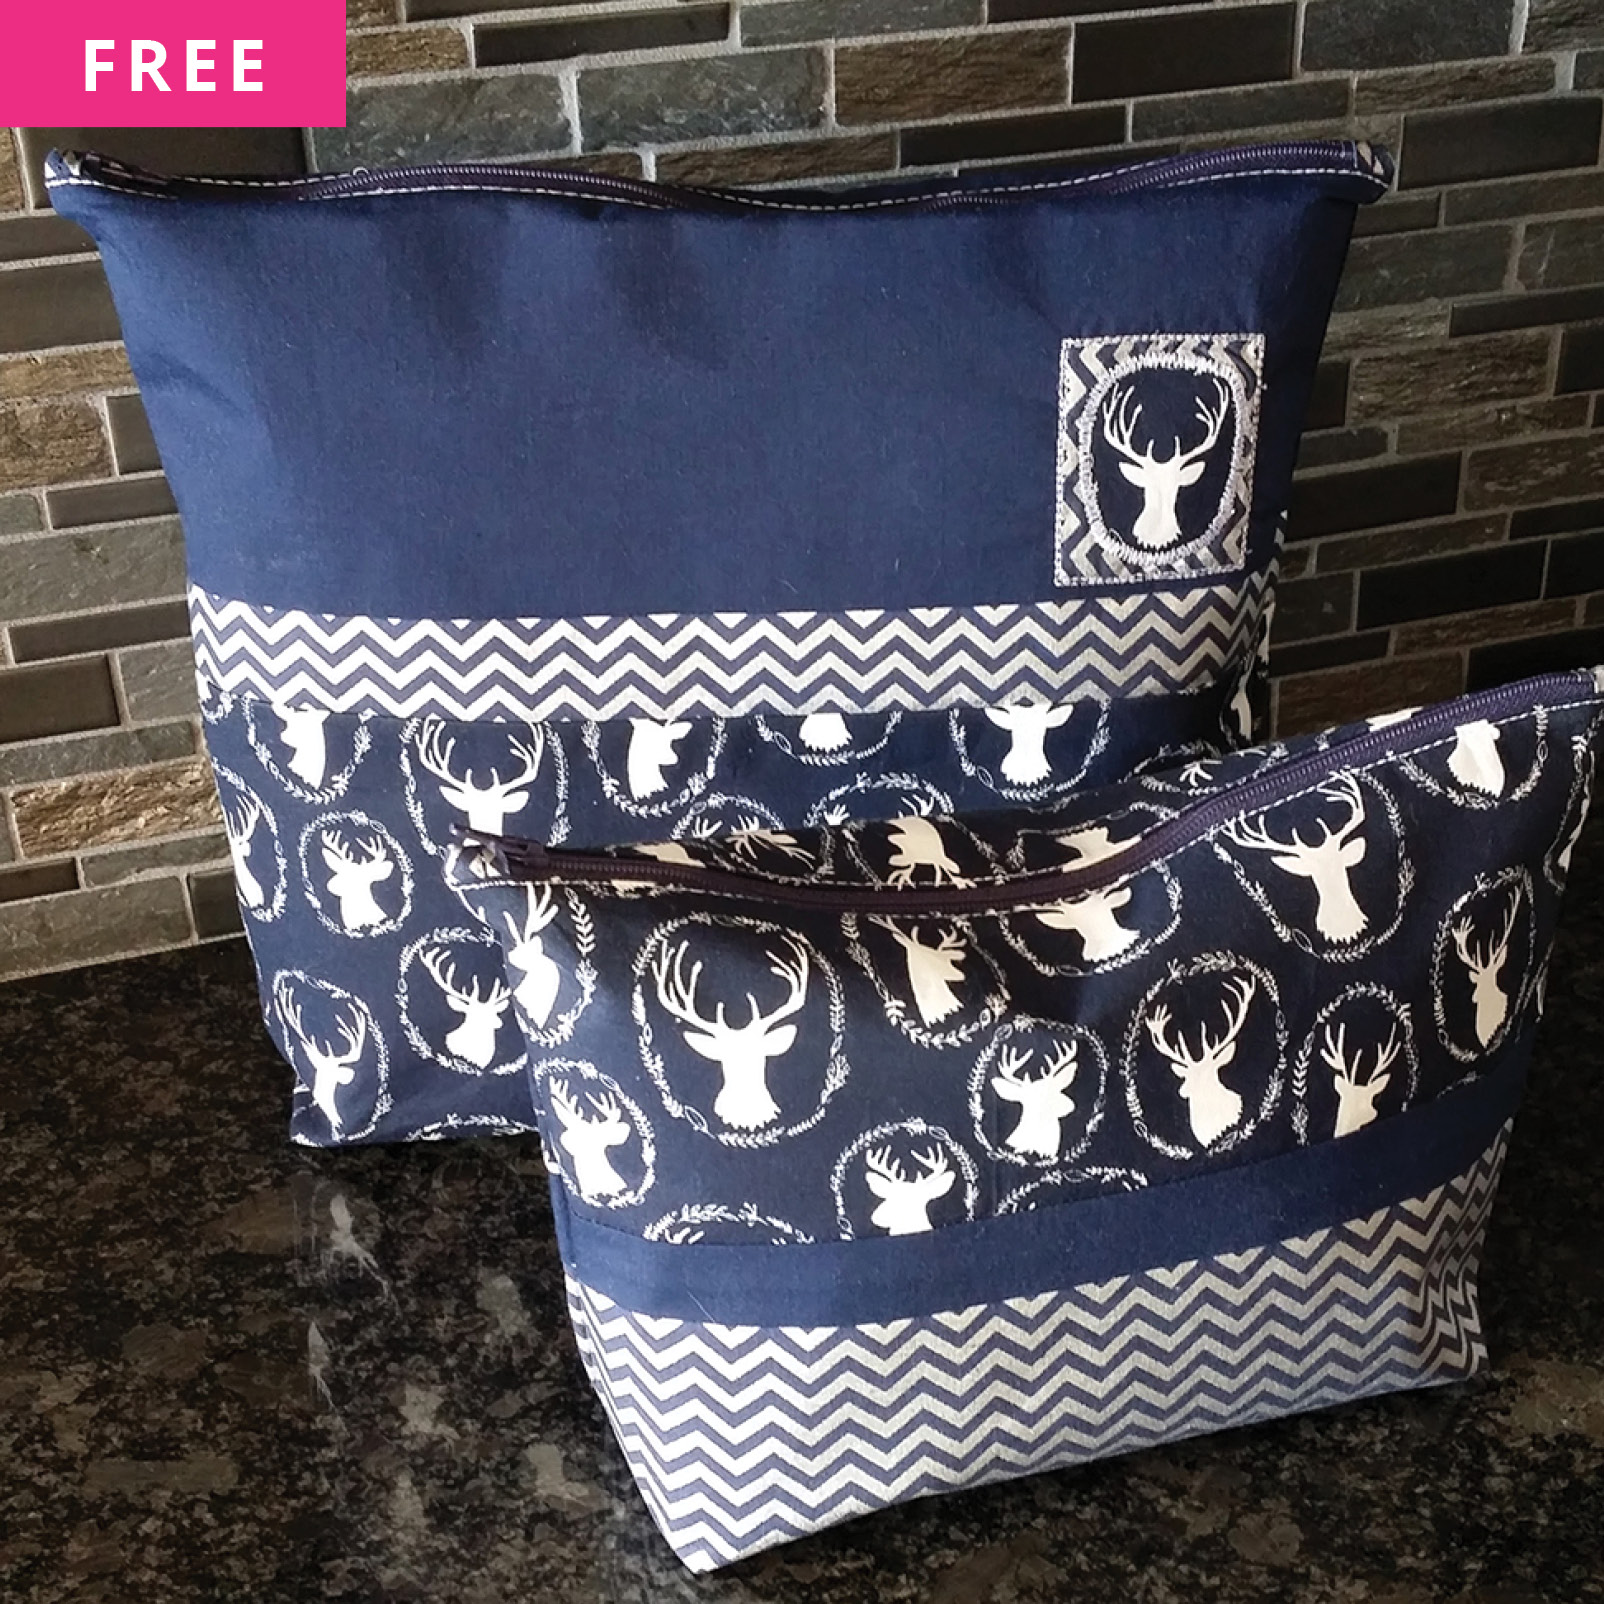 Free Sewing Pattern - Zippered Pouch